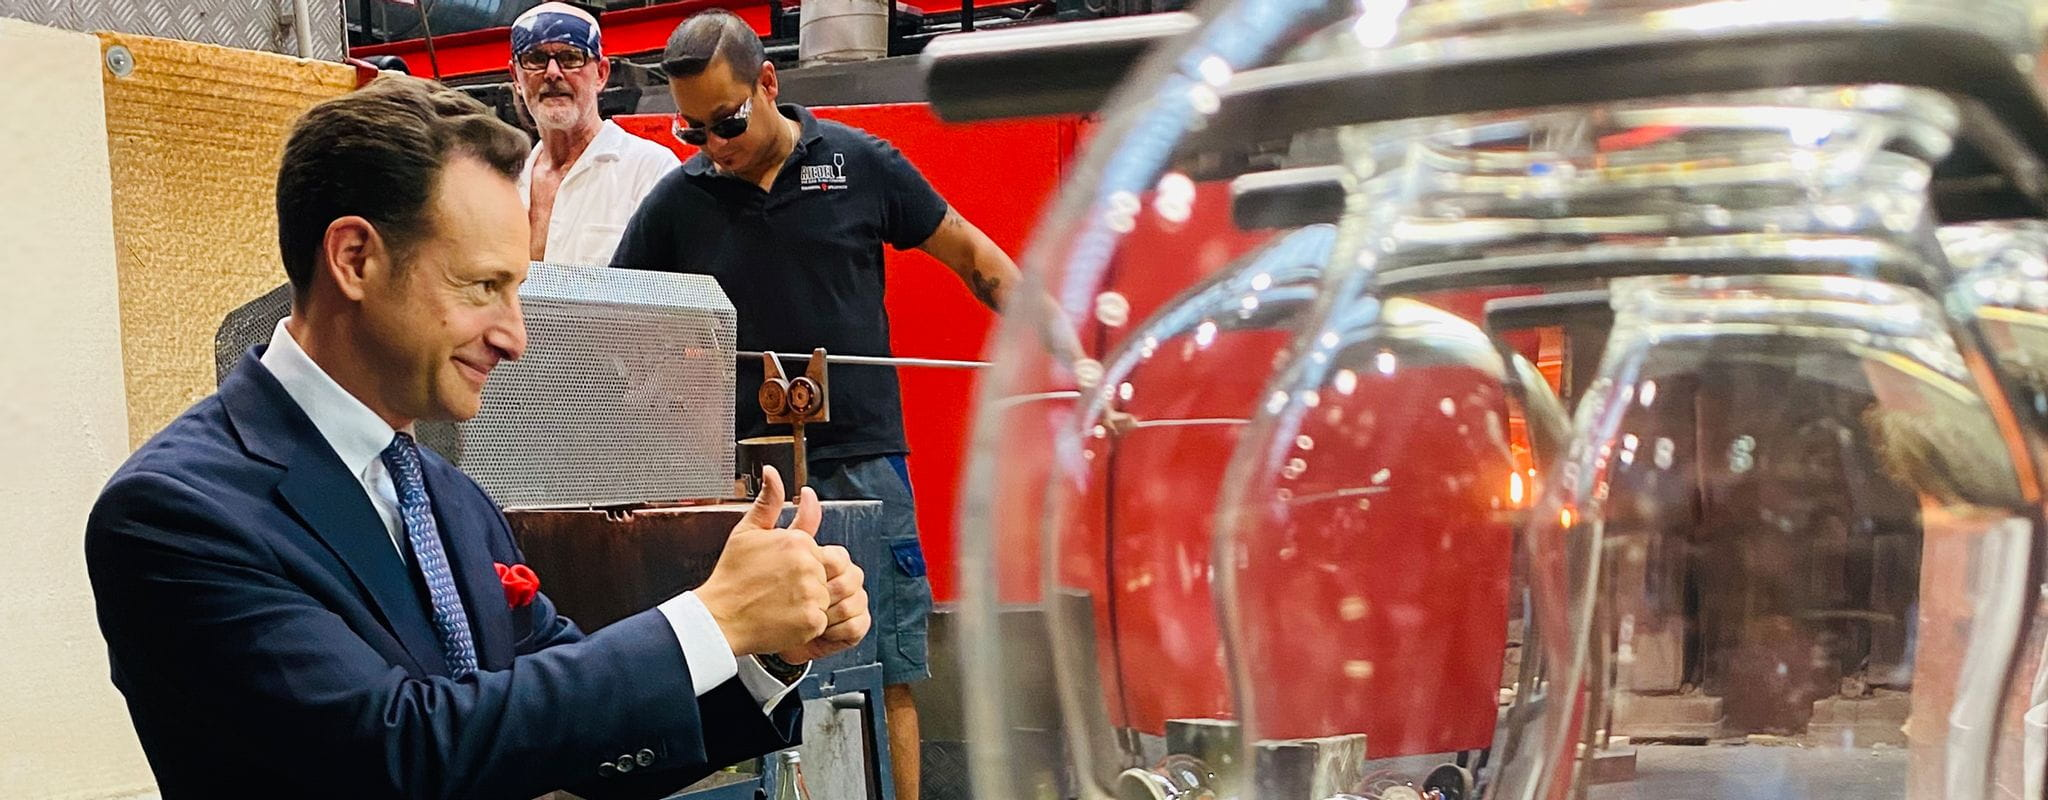 Maximilian Riedel gives thumbs up to the glass blowers